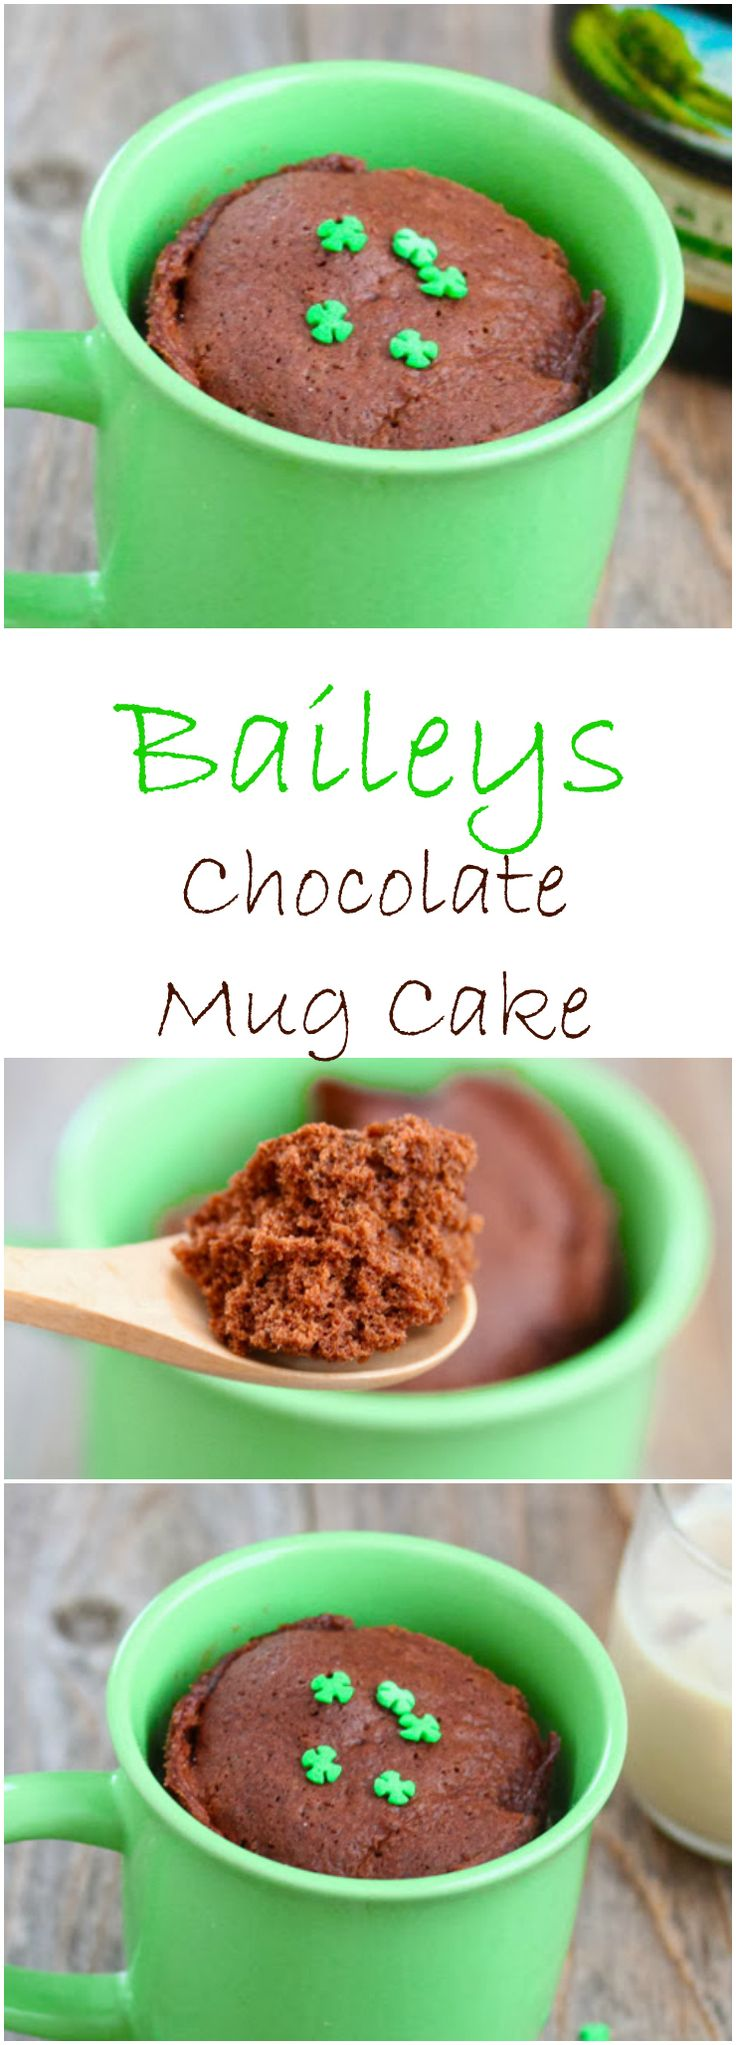 Baileys Chocolate Mug Cake. Perfect for St. Patrick's Day!